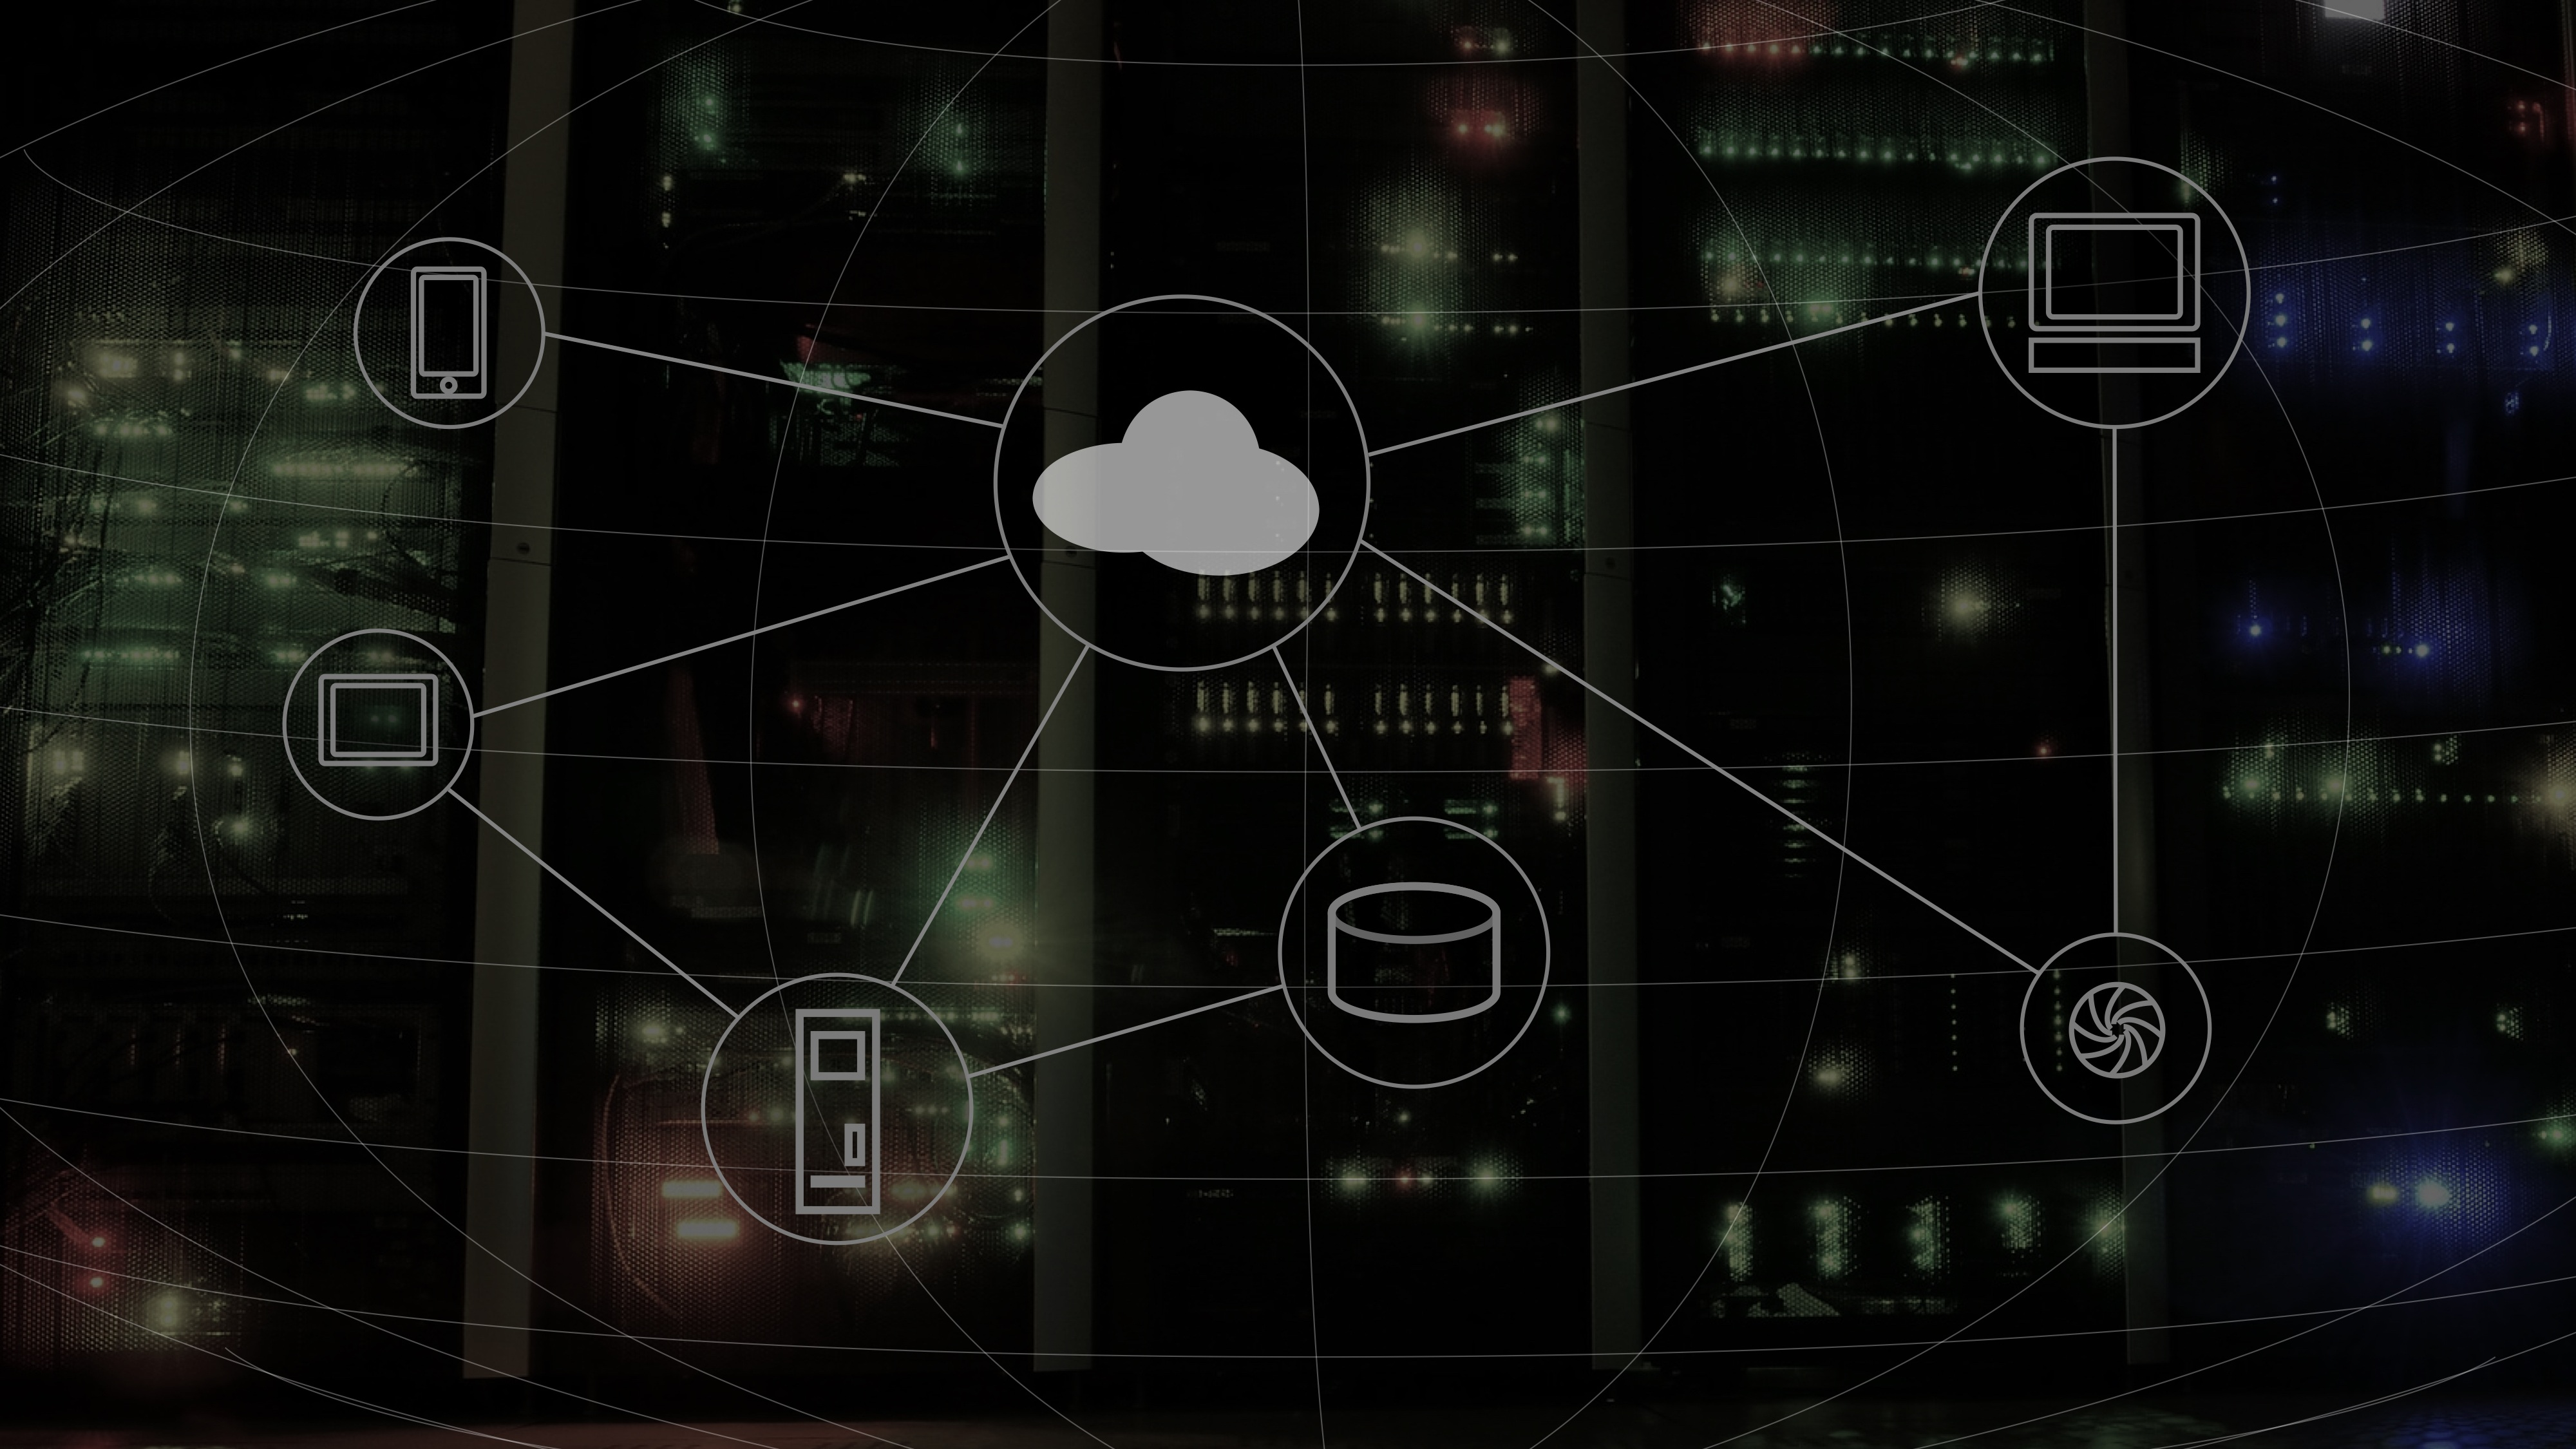 Building the IIoT requires connecting OT to IT